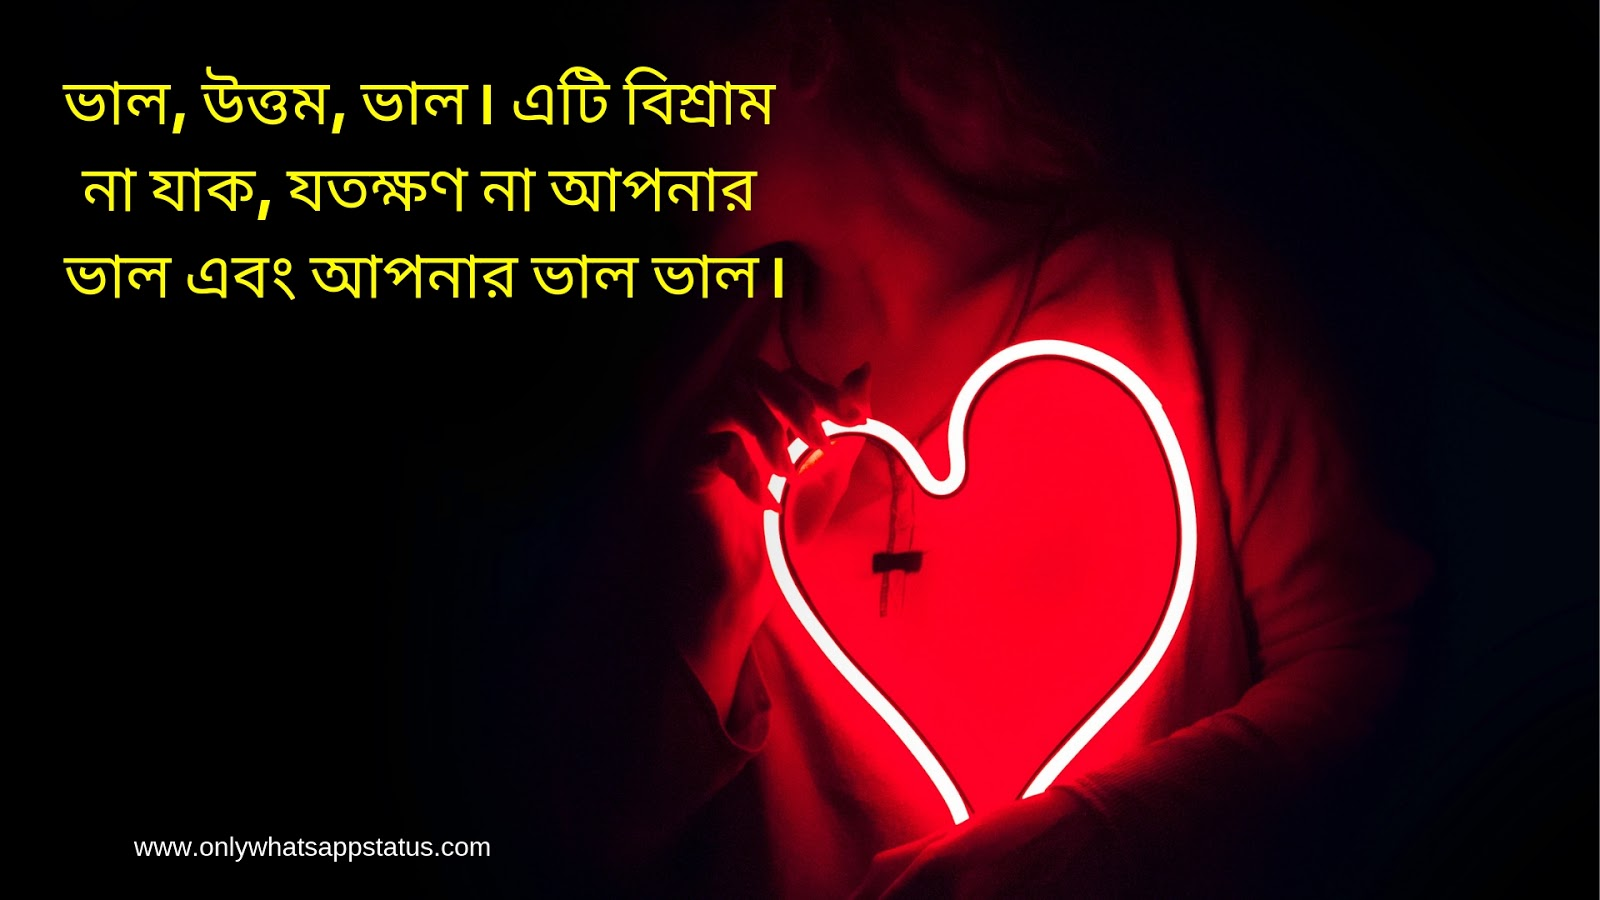 Love Quotes For Whatsapp Status In Bengali - Drawing Apem